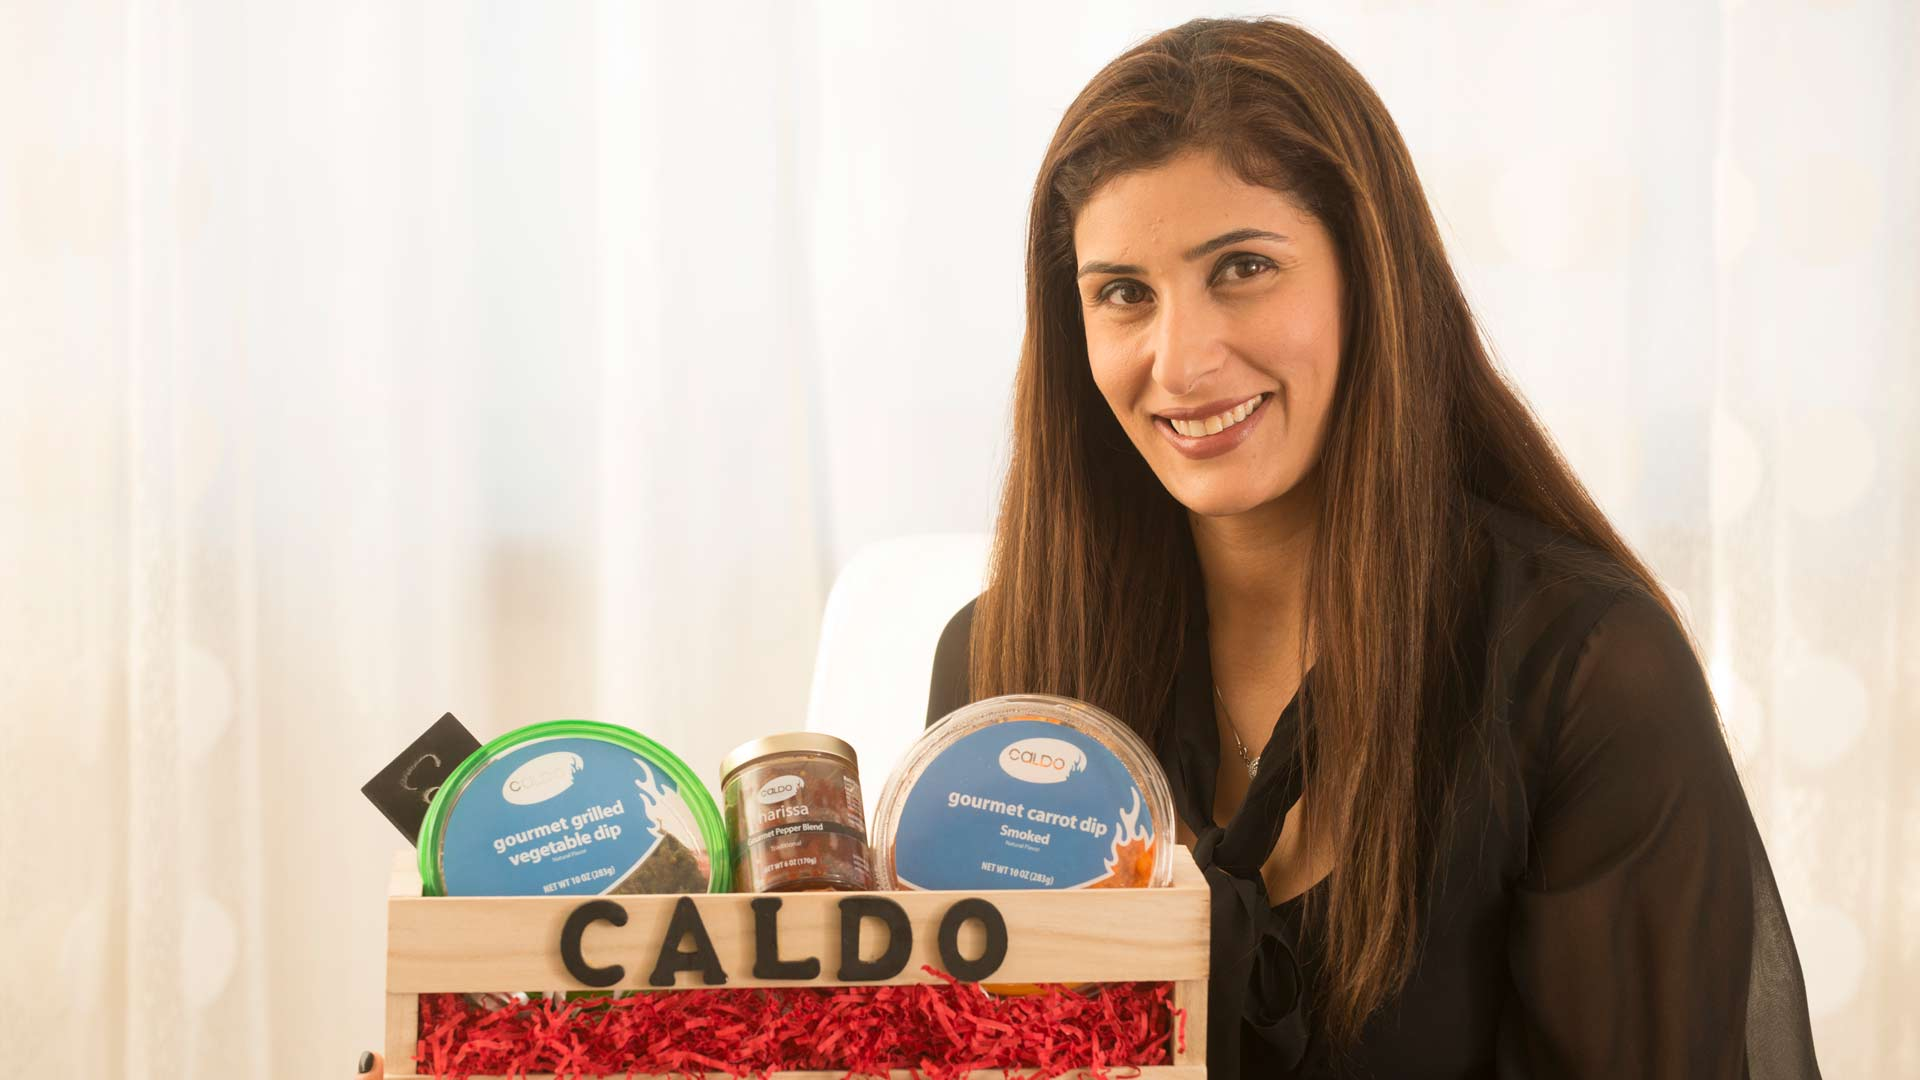 woman holding various food products from Caldo foods